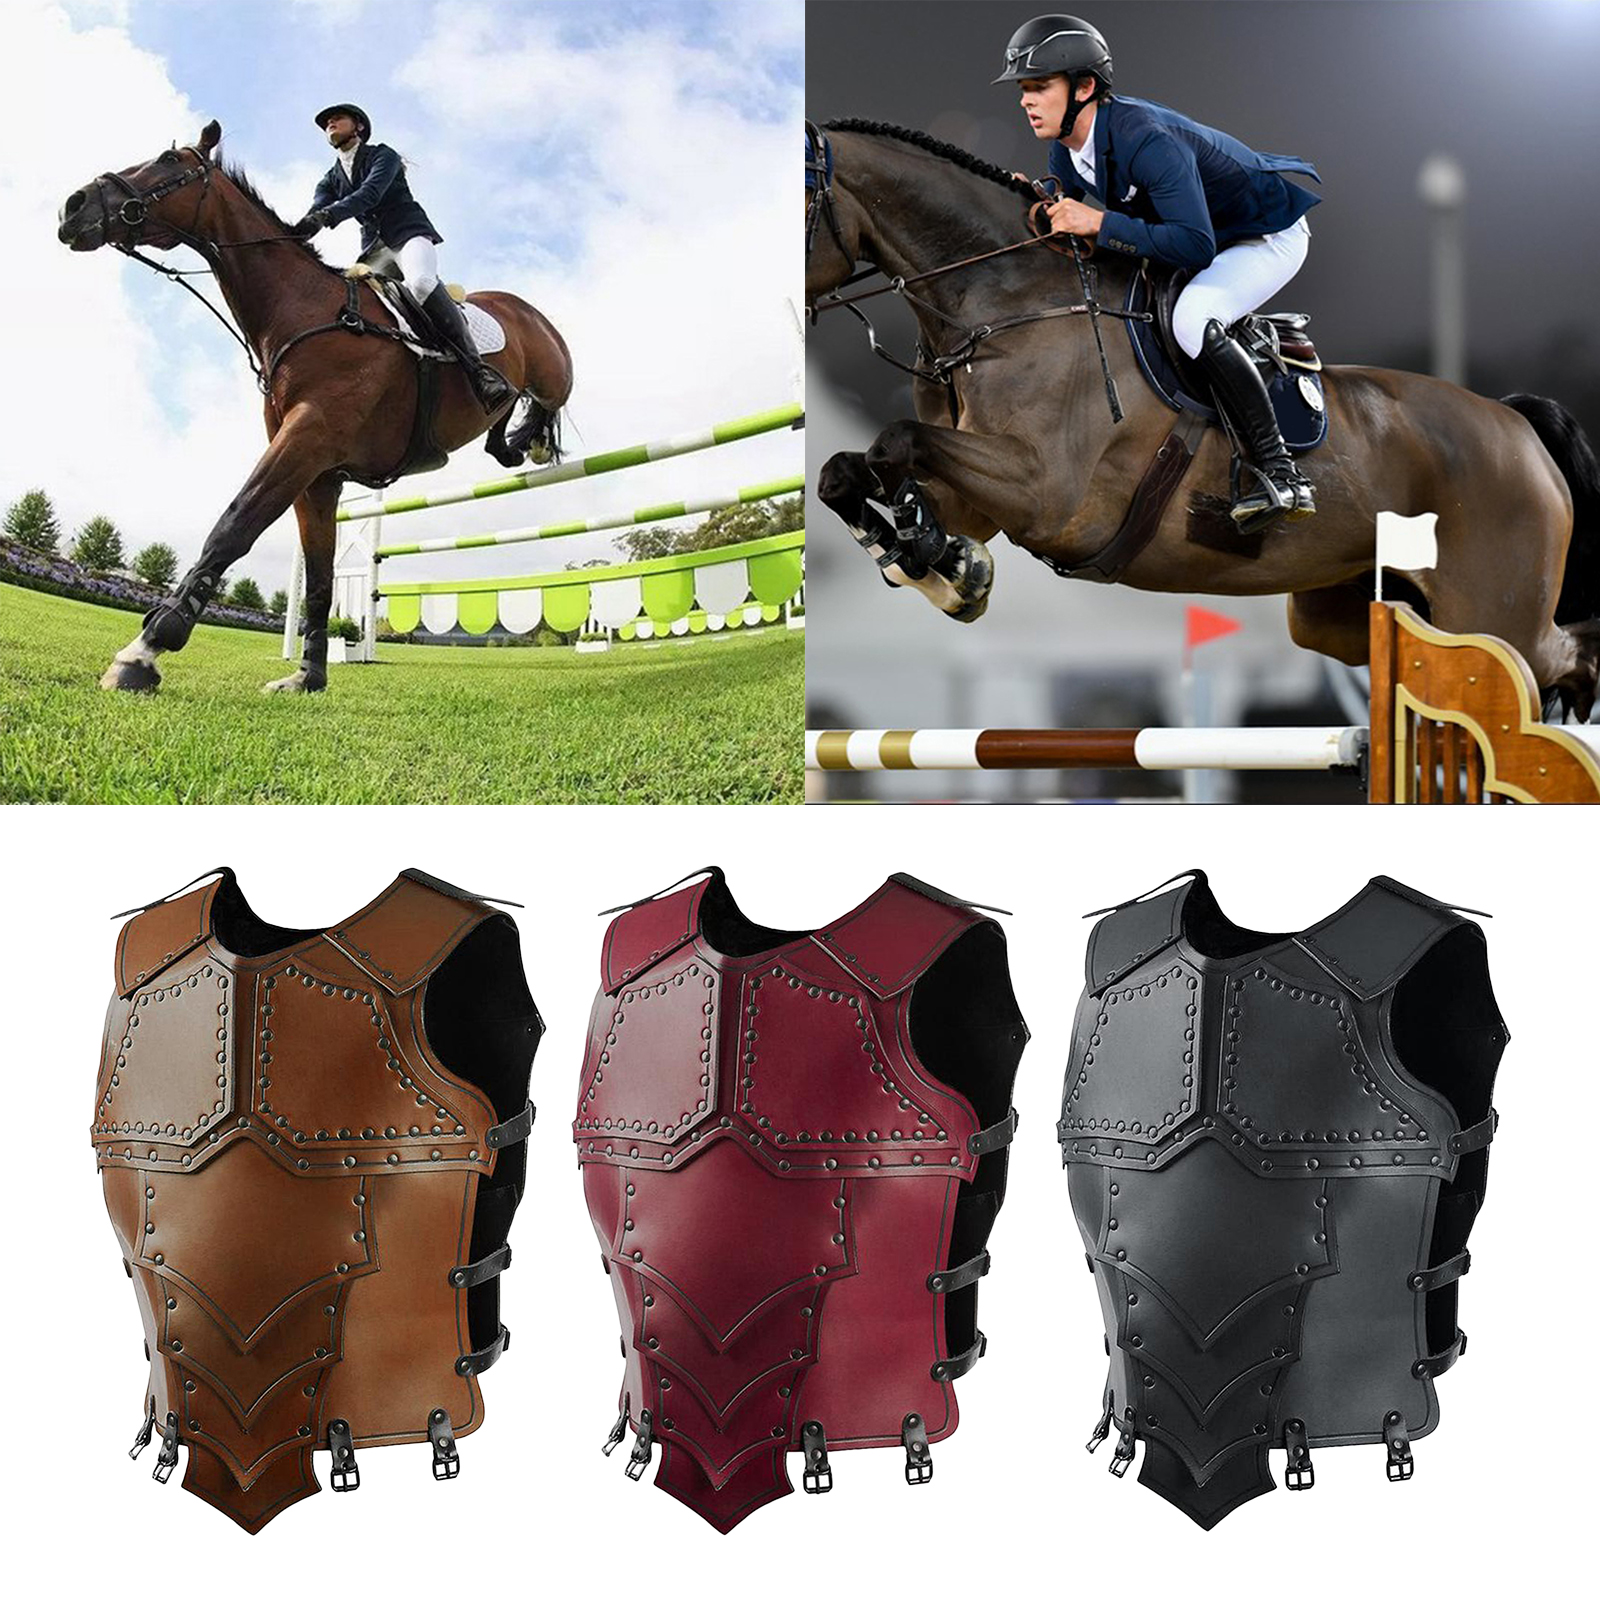 Horse Riding Vest, Body Protector Safety Vest, Body Protective Damping Sports Vest, Comfortable Lightweight Safety Waistcoat